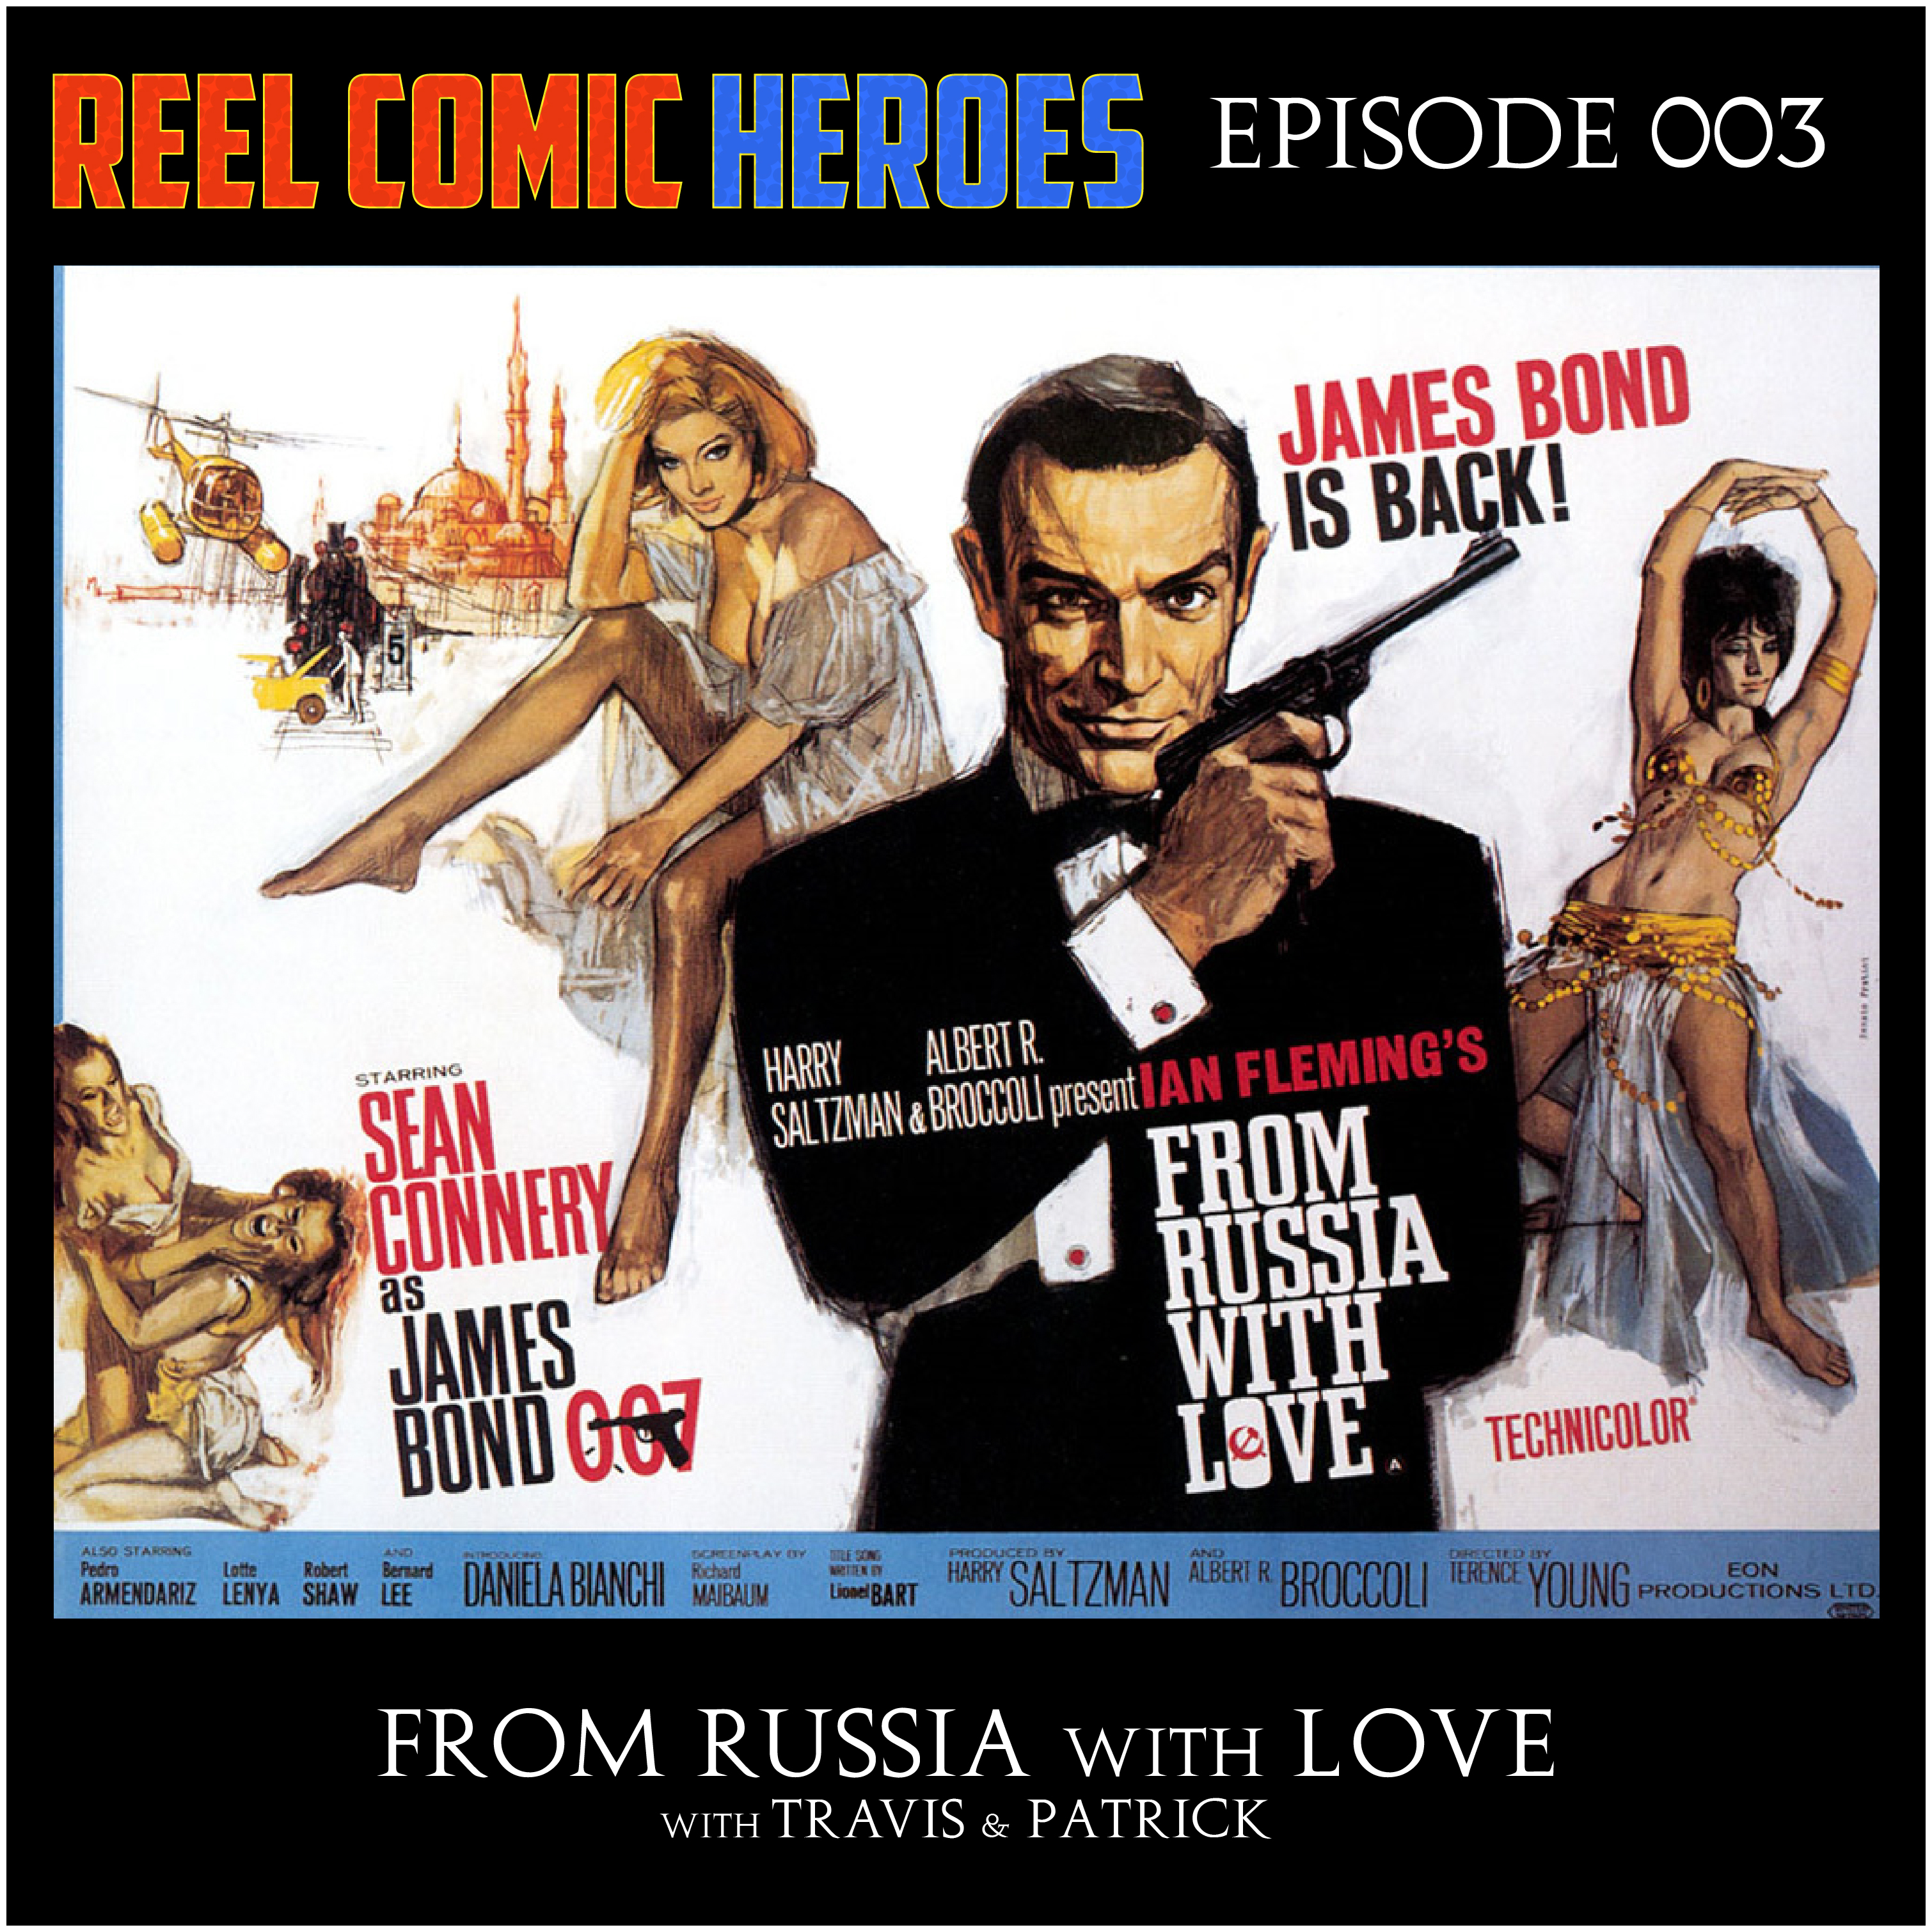 Artwork for Reel Comic Heroes 003 - From Russia With Love - Audio Commentary